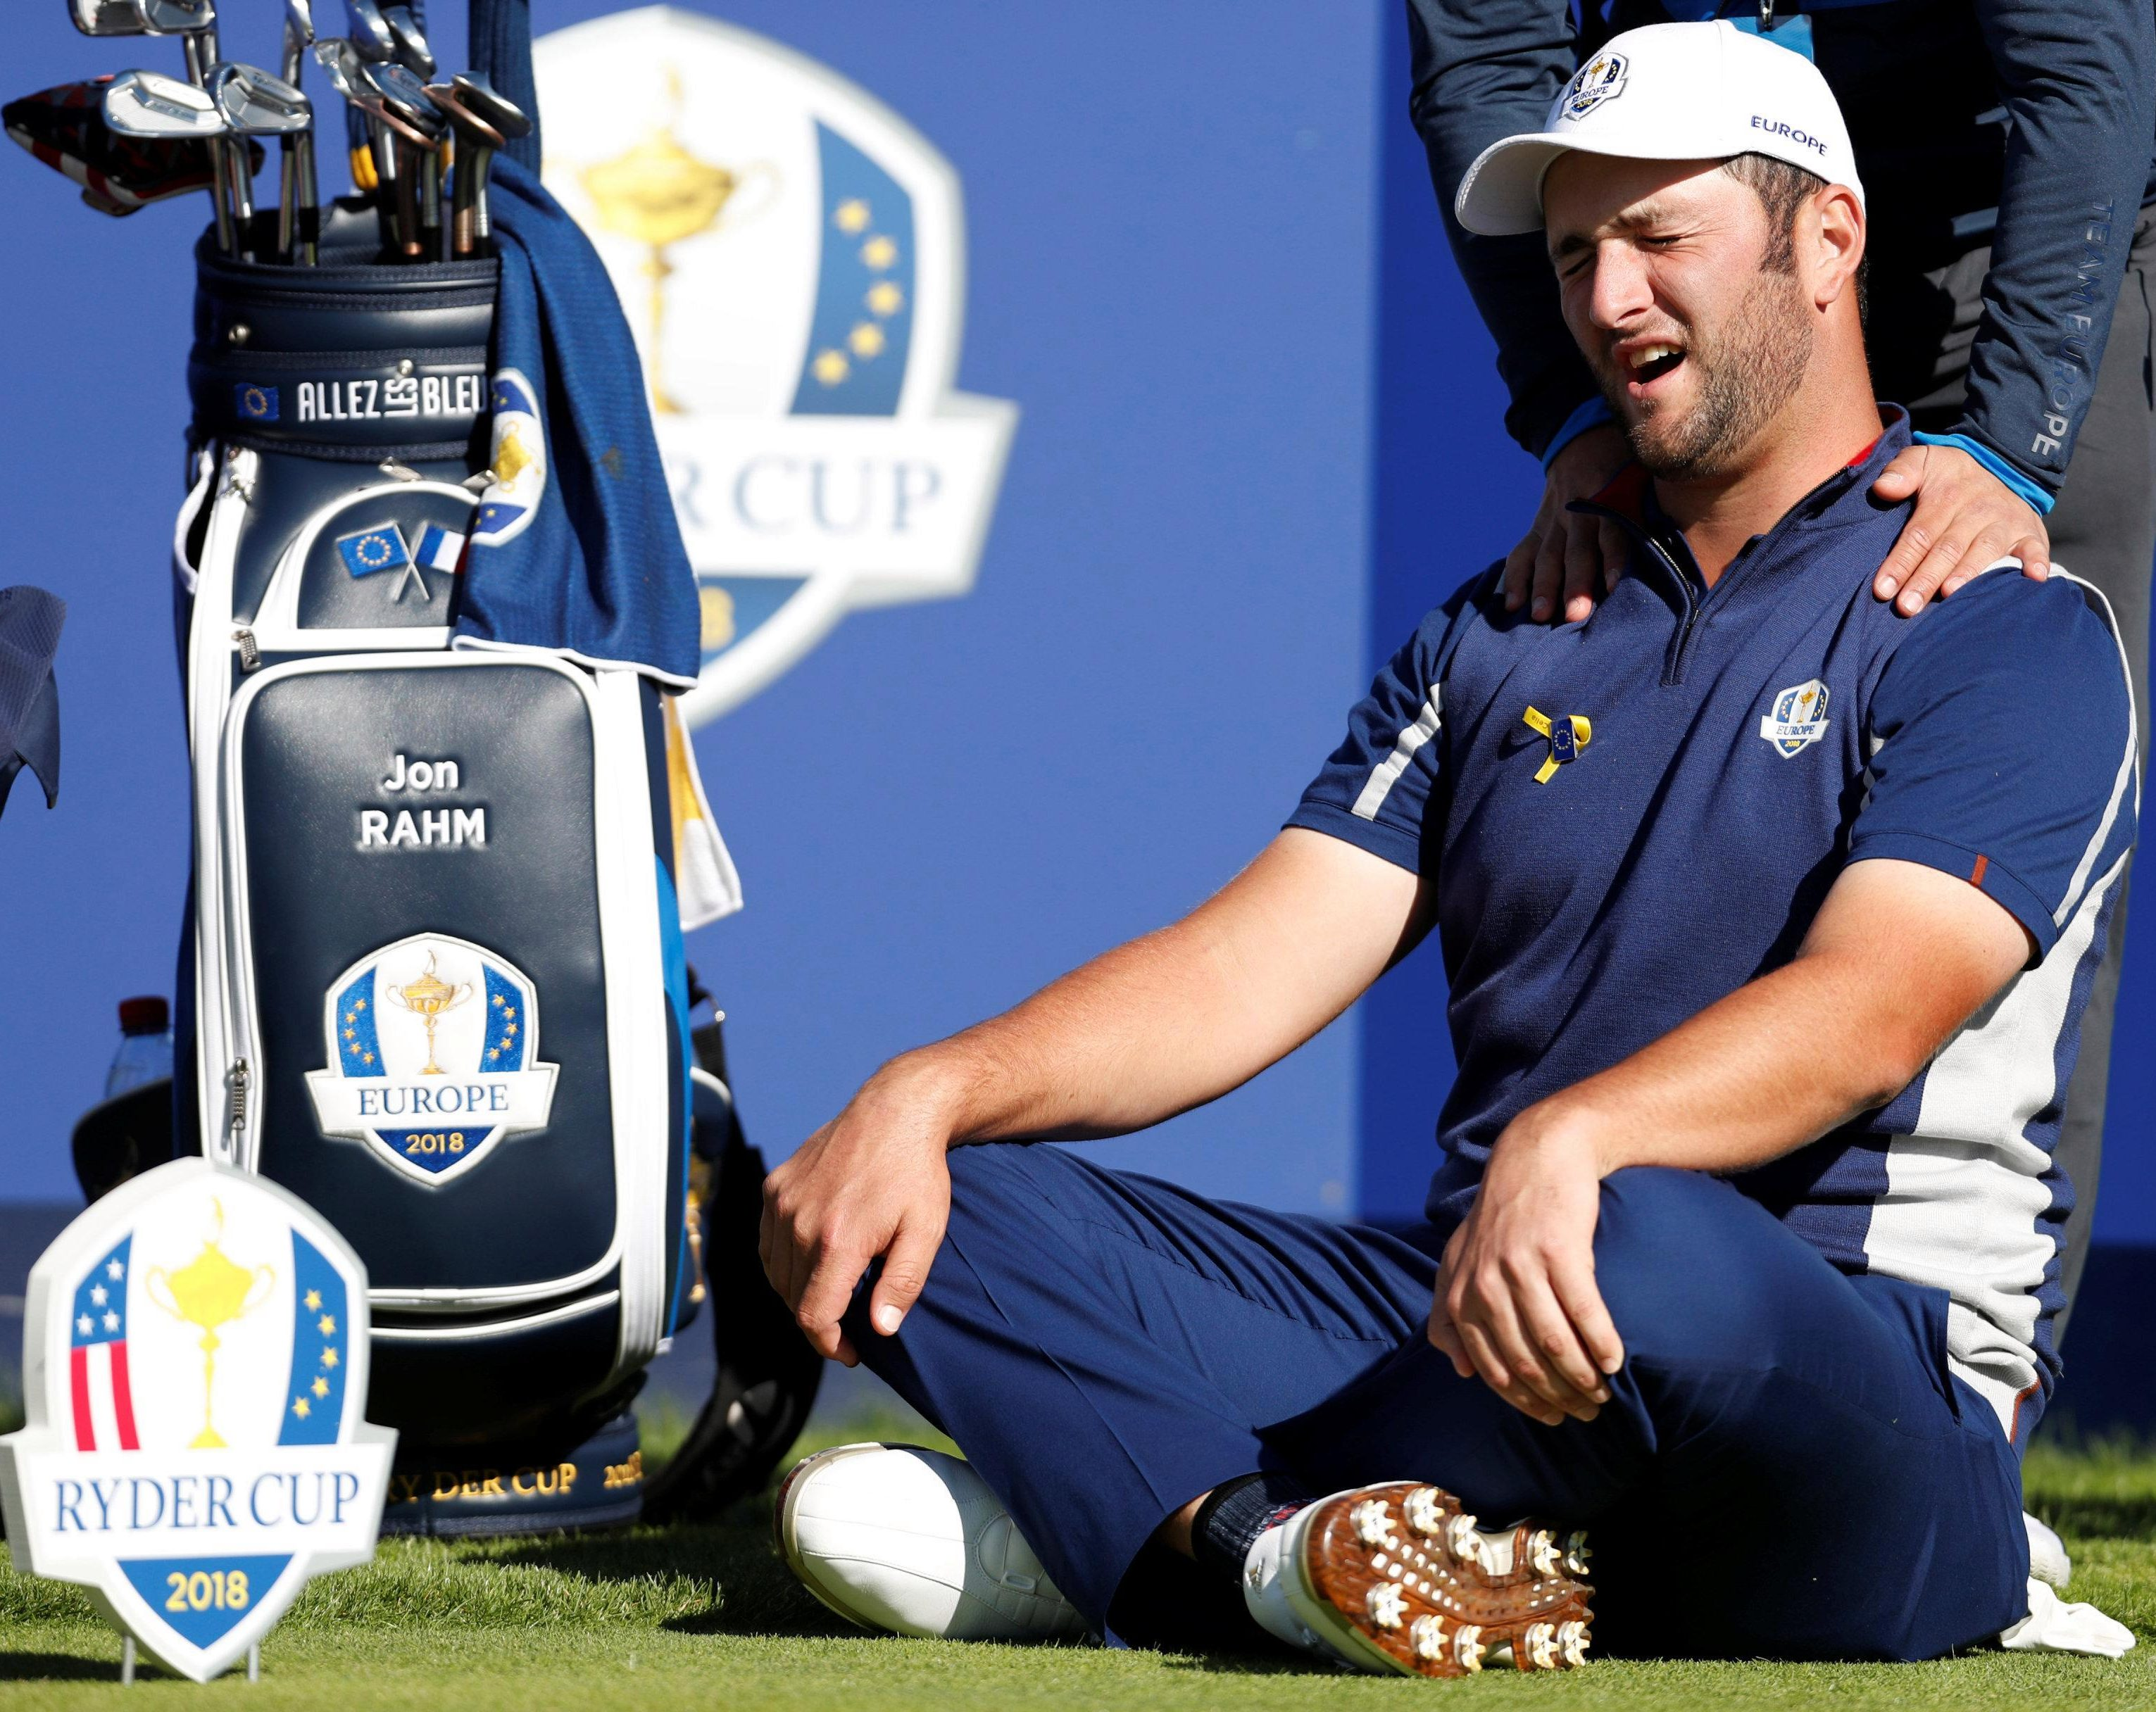 Europe's Jon Rahm takes a breather during practice for the 42nd Ryder Cup